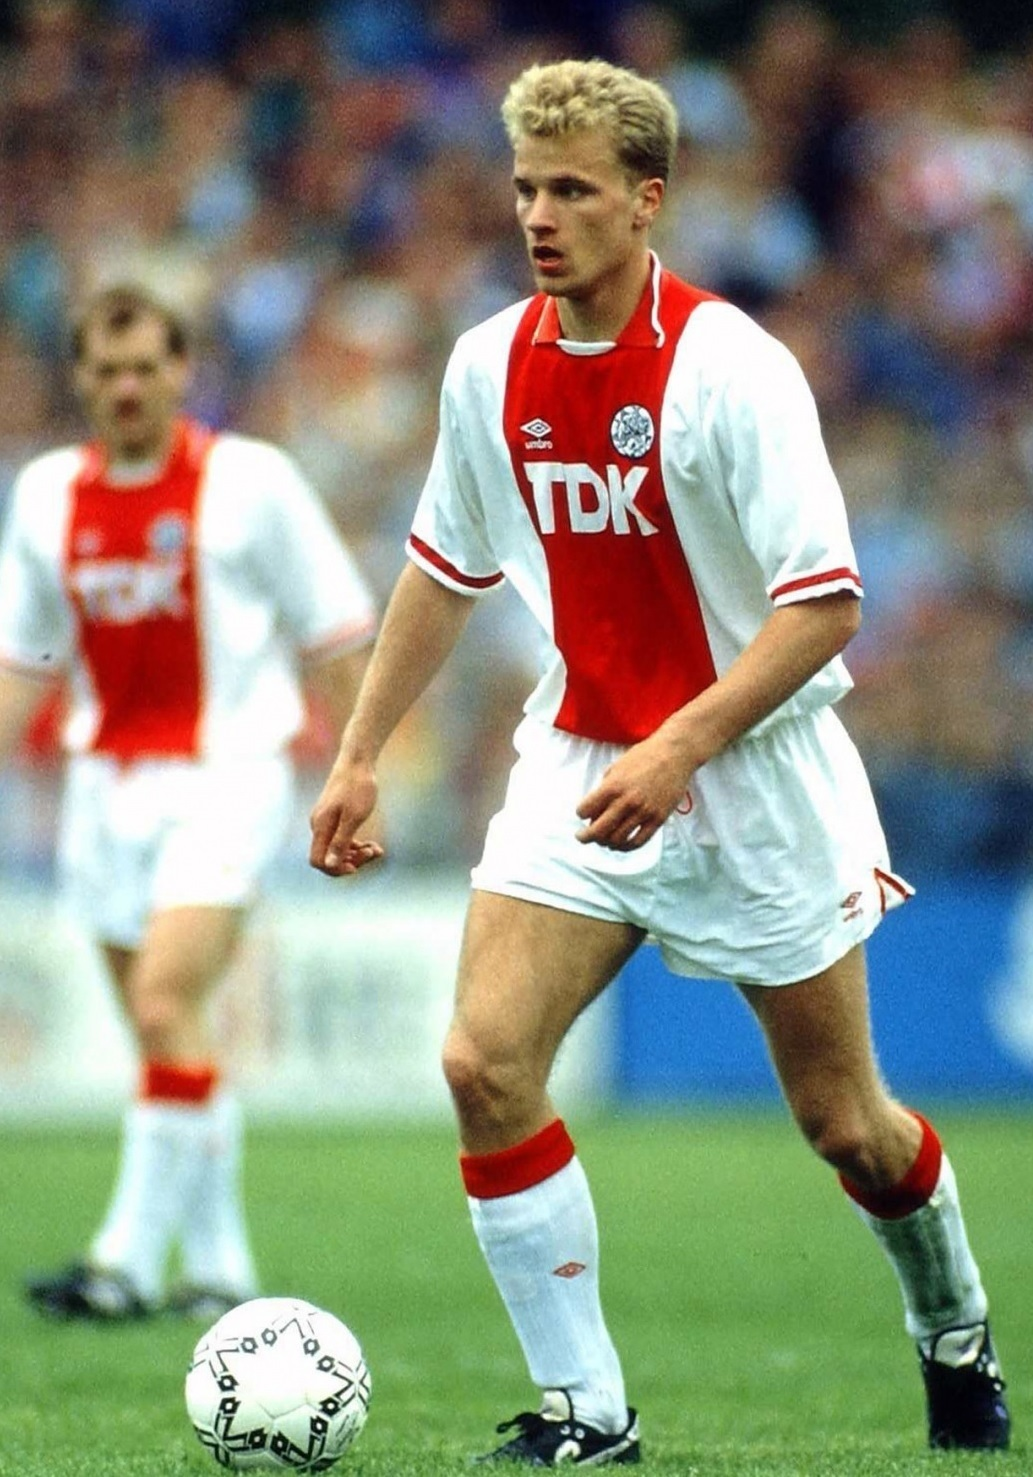 Ajax-1989-90-UMBRO-home-kit-Dennis-Bergkamp.jpg